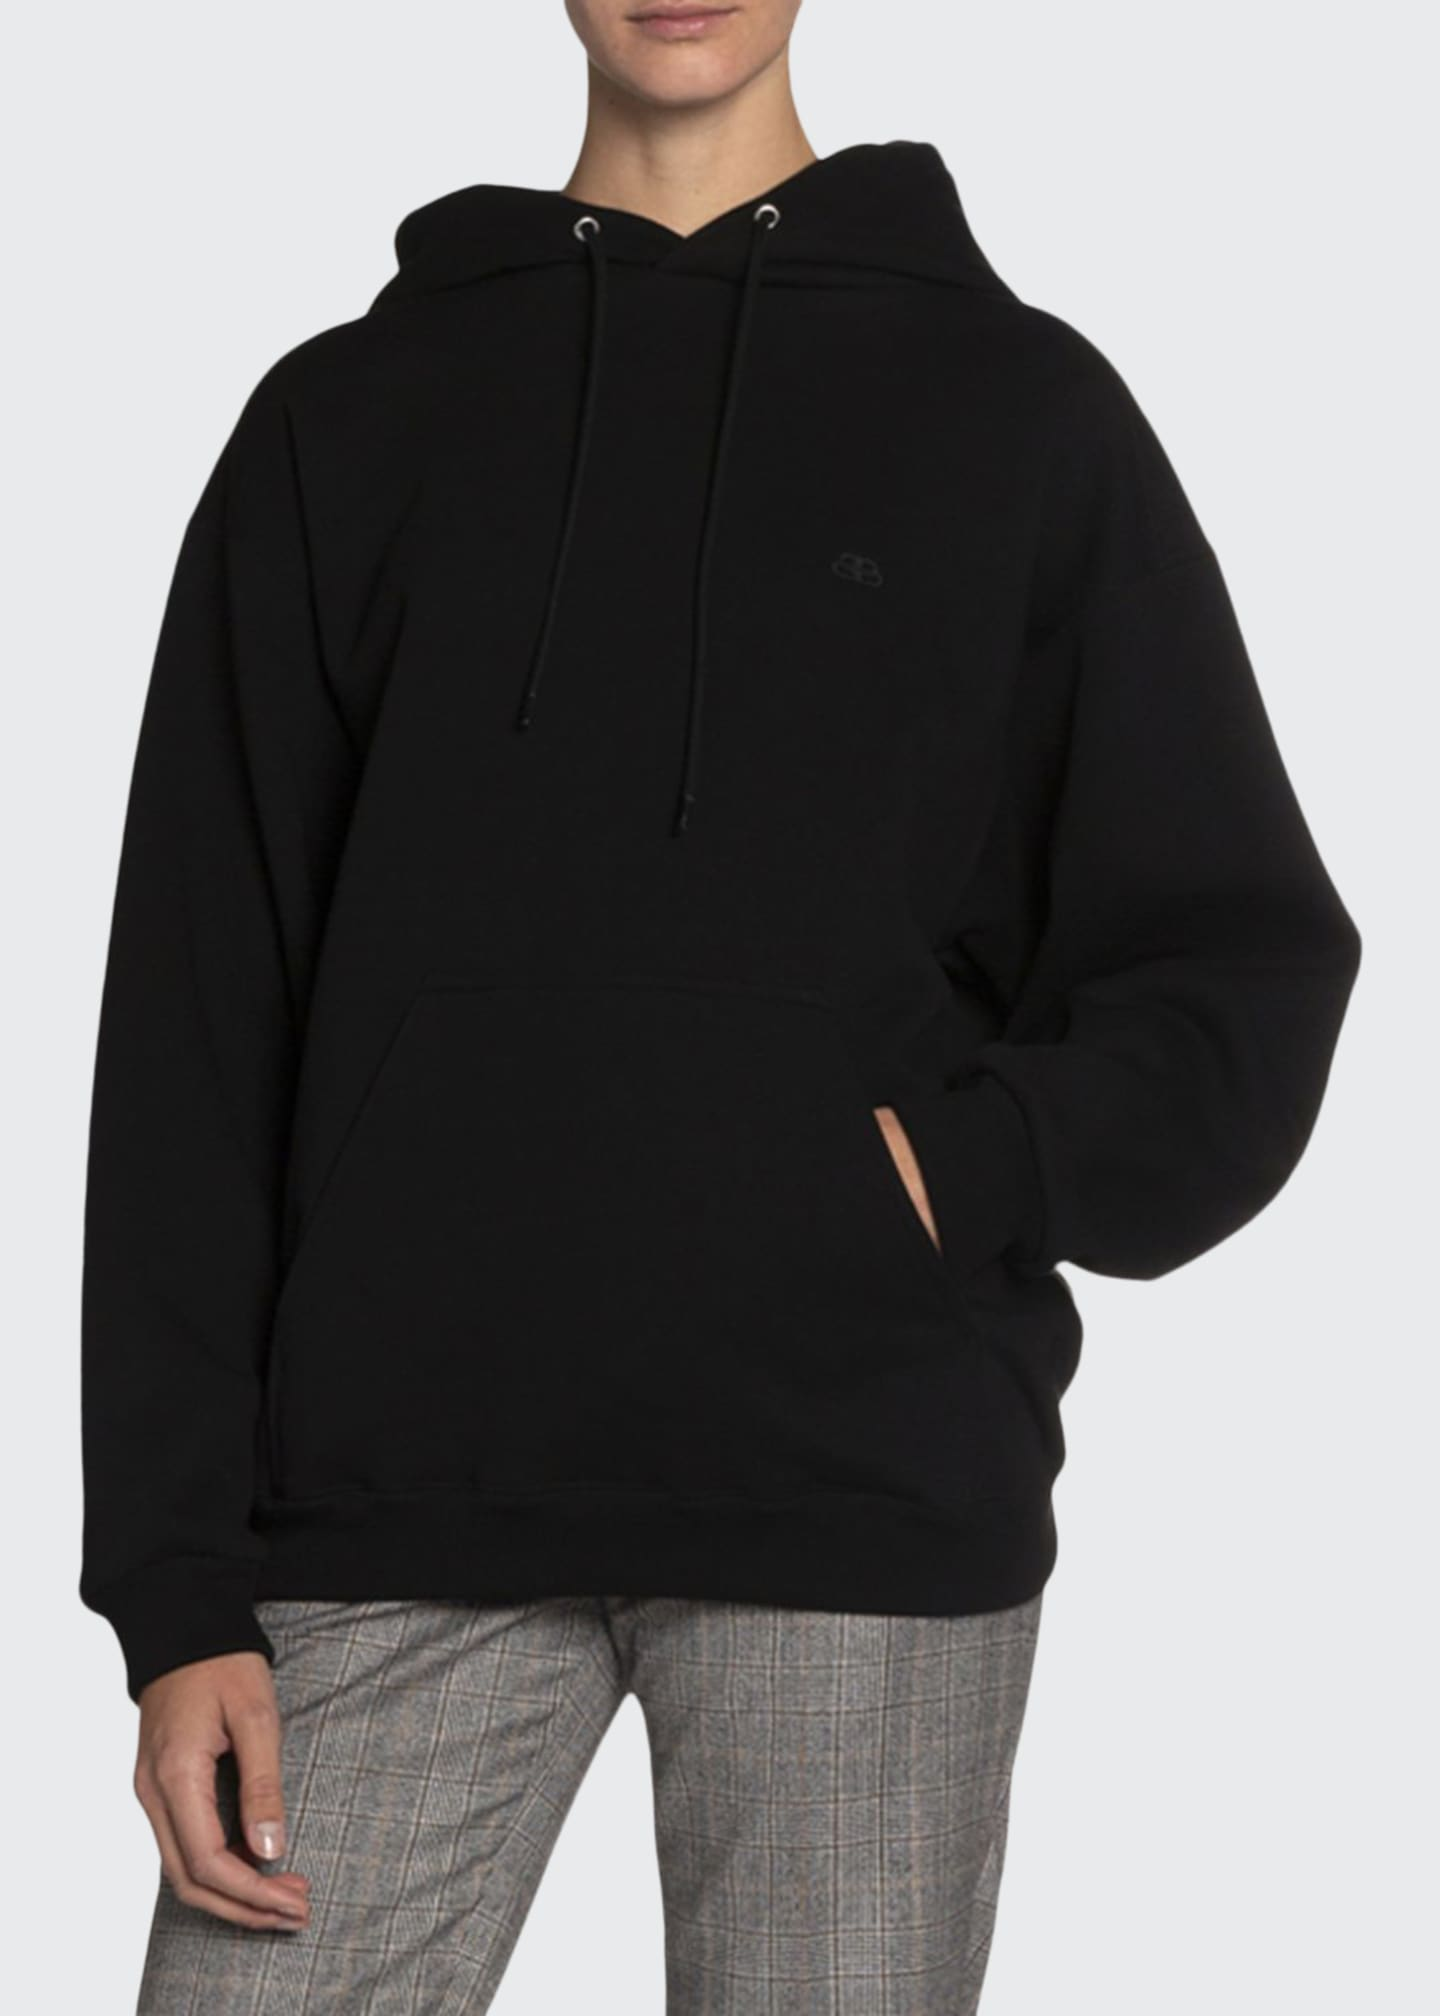 Balenciaga Logo-Embroidered Hooded Sweatshirt